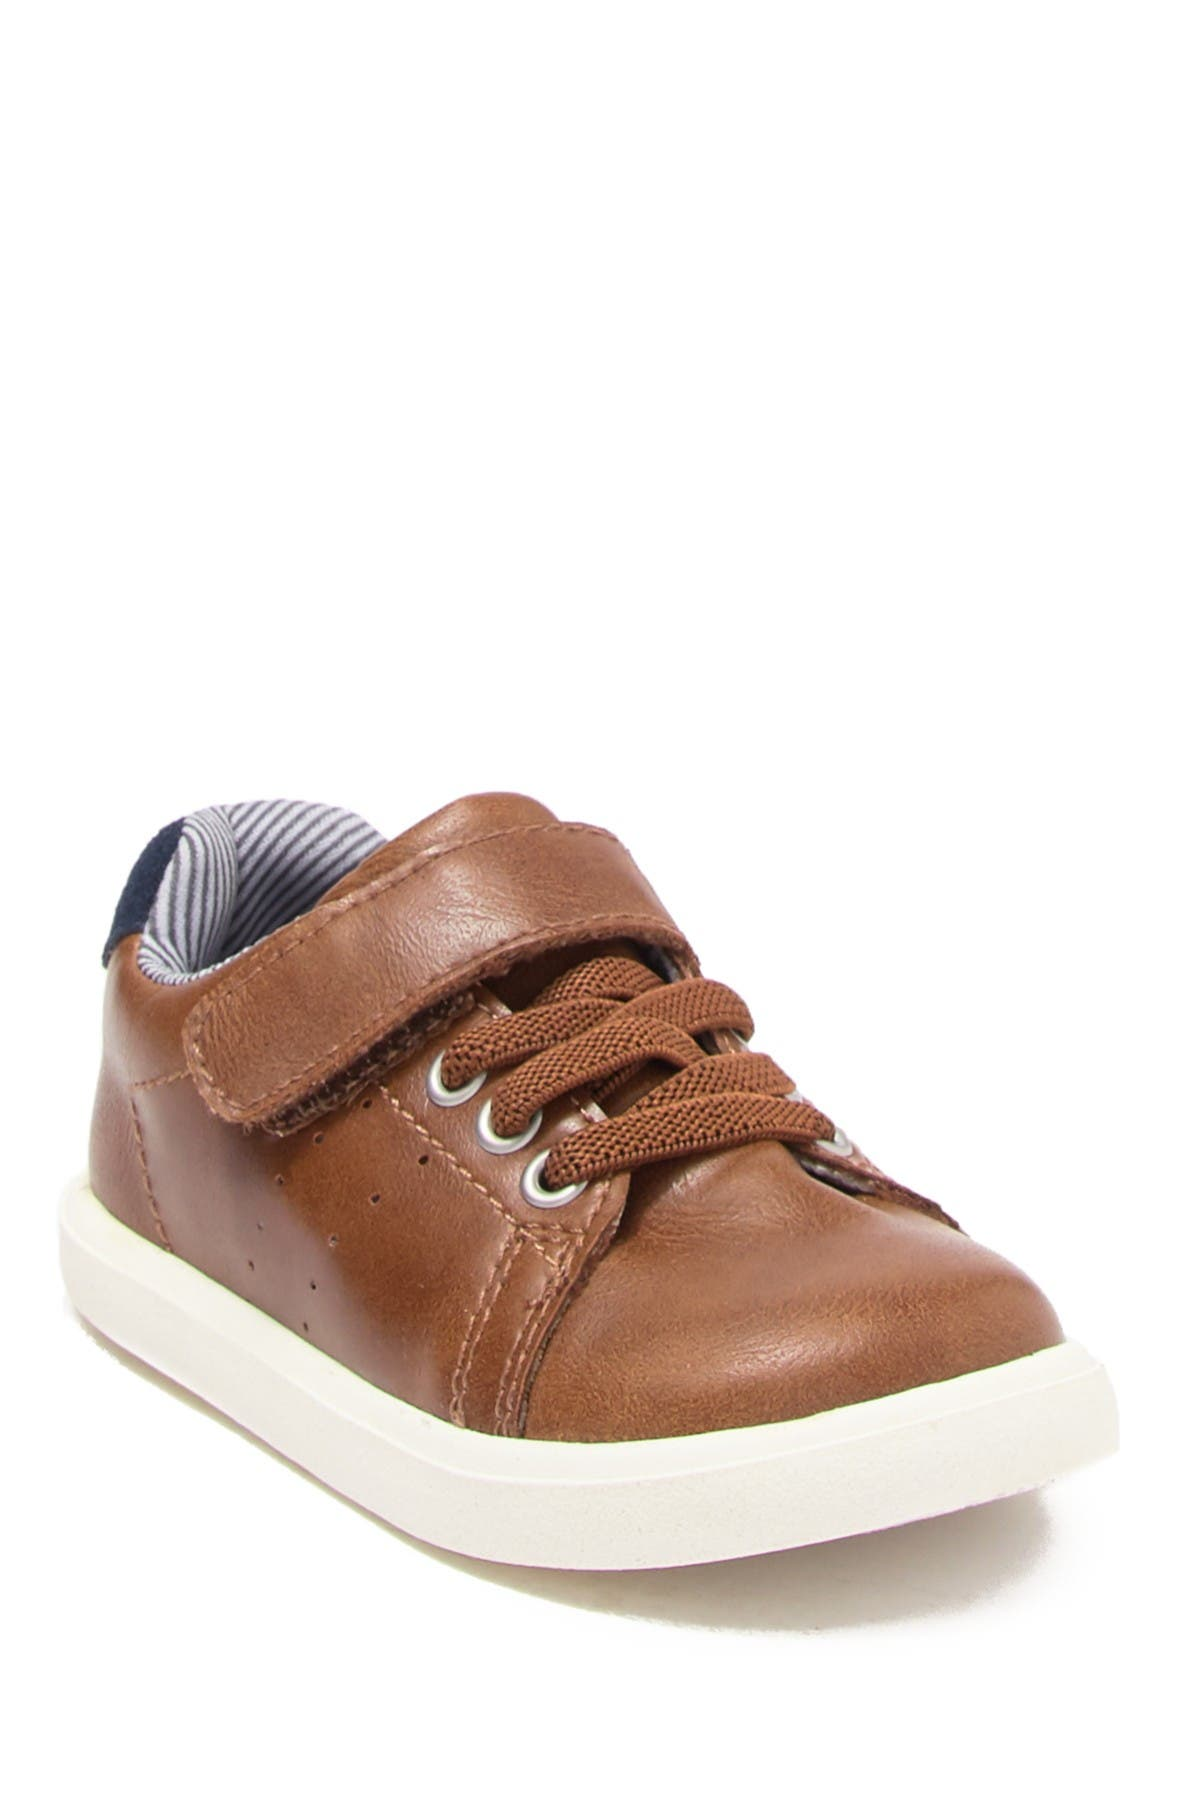 Image of Harper Canyon Lil Eddie Lace-Up Sneaker